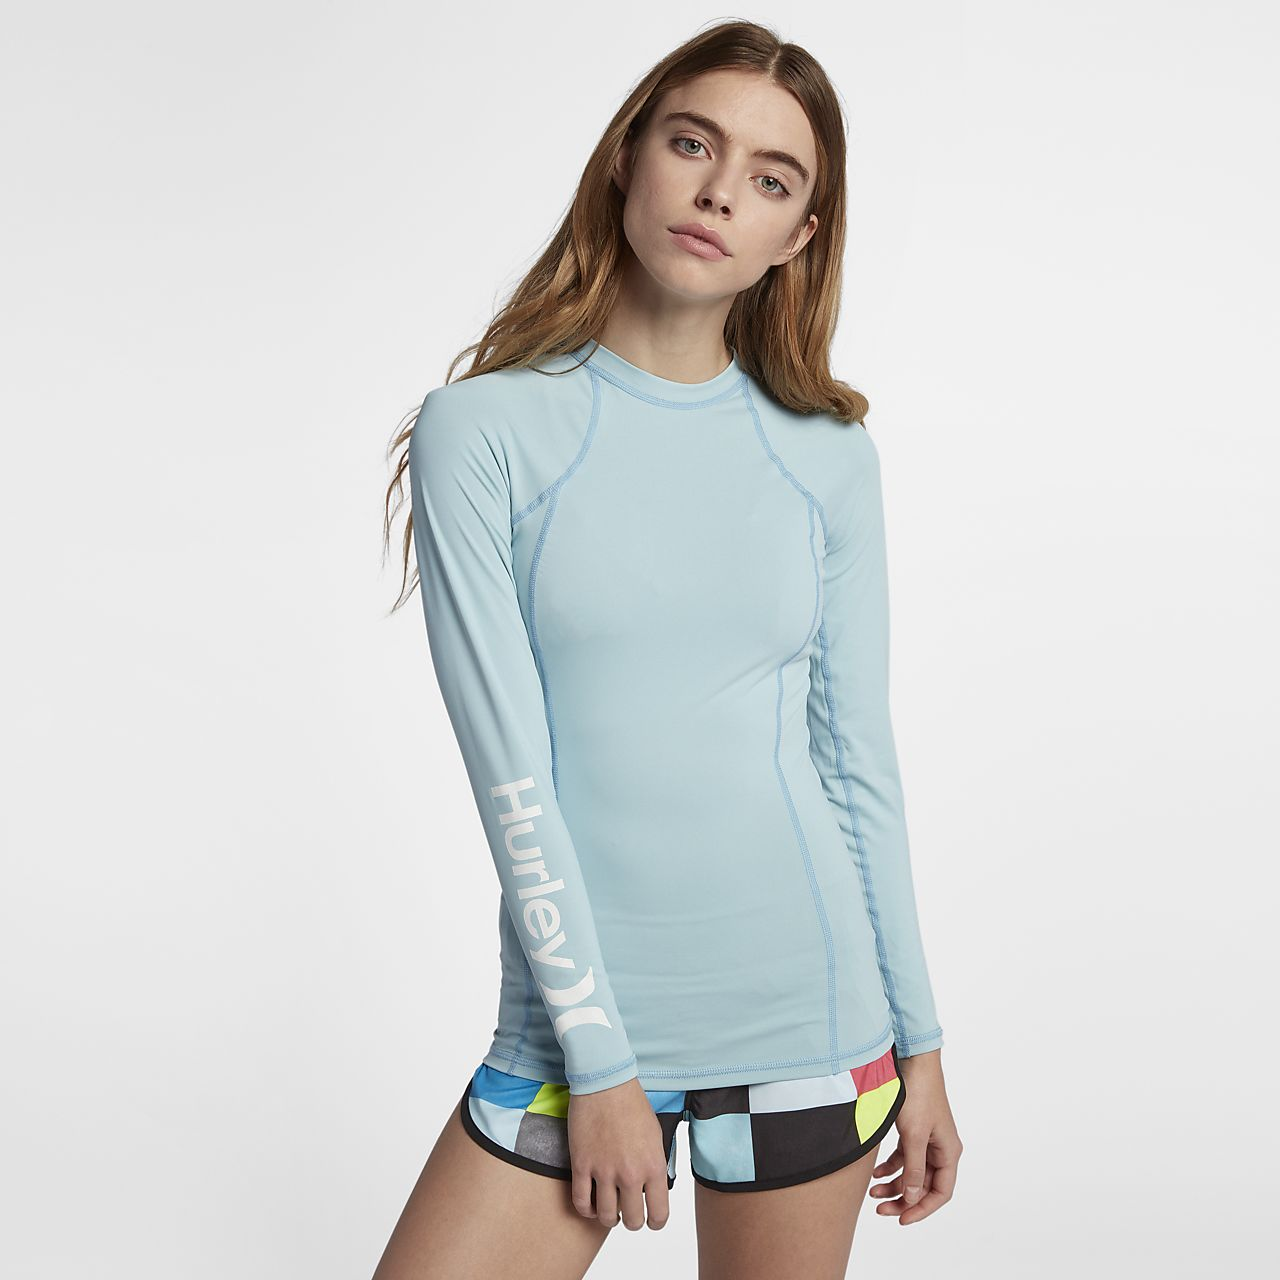 san francisco d610b 4f834 Hurley One And Only Rashguard Surfshirt voor dames. Nike.com BE